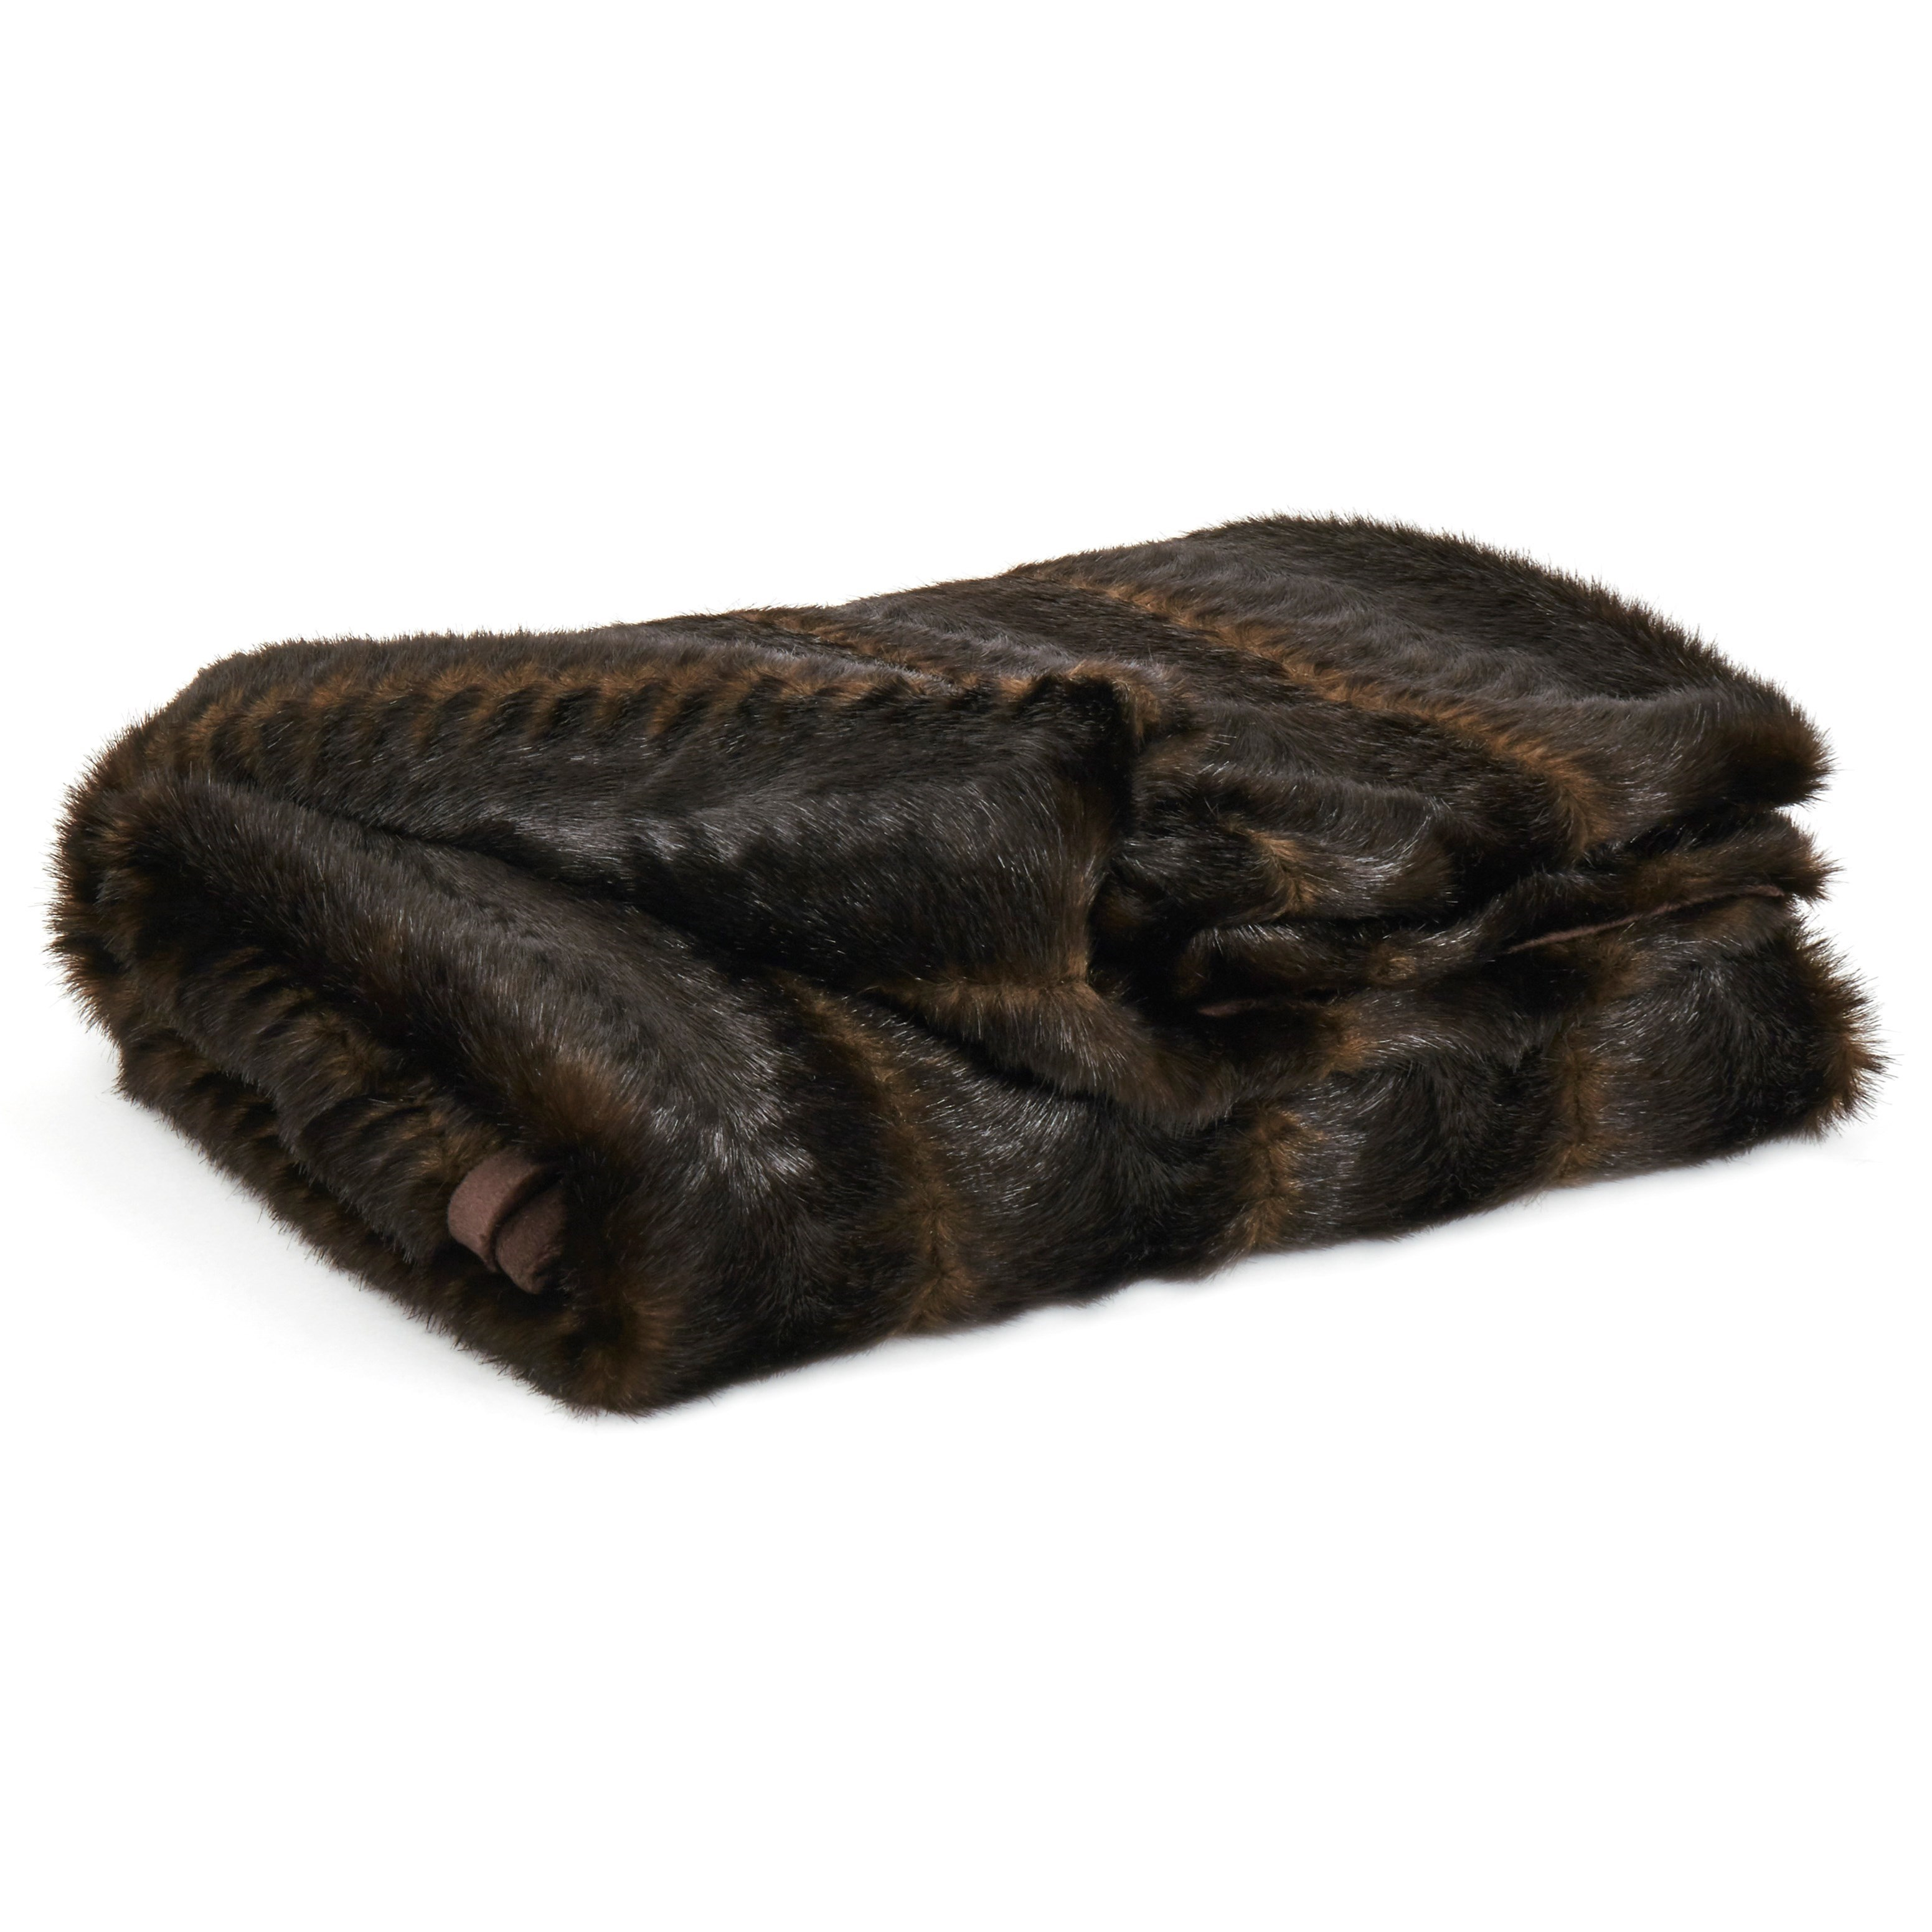 Throws Jessen Brown/Black Faux Fur Throw by Signature Design by Ashley at Northeast Factory Direct